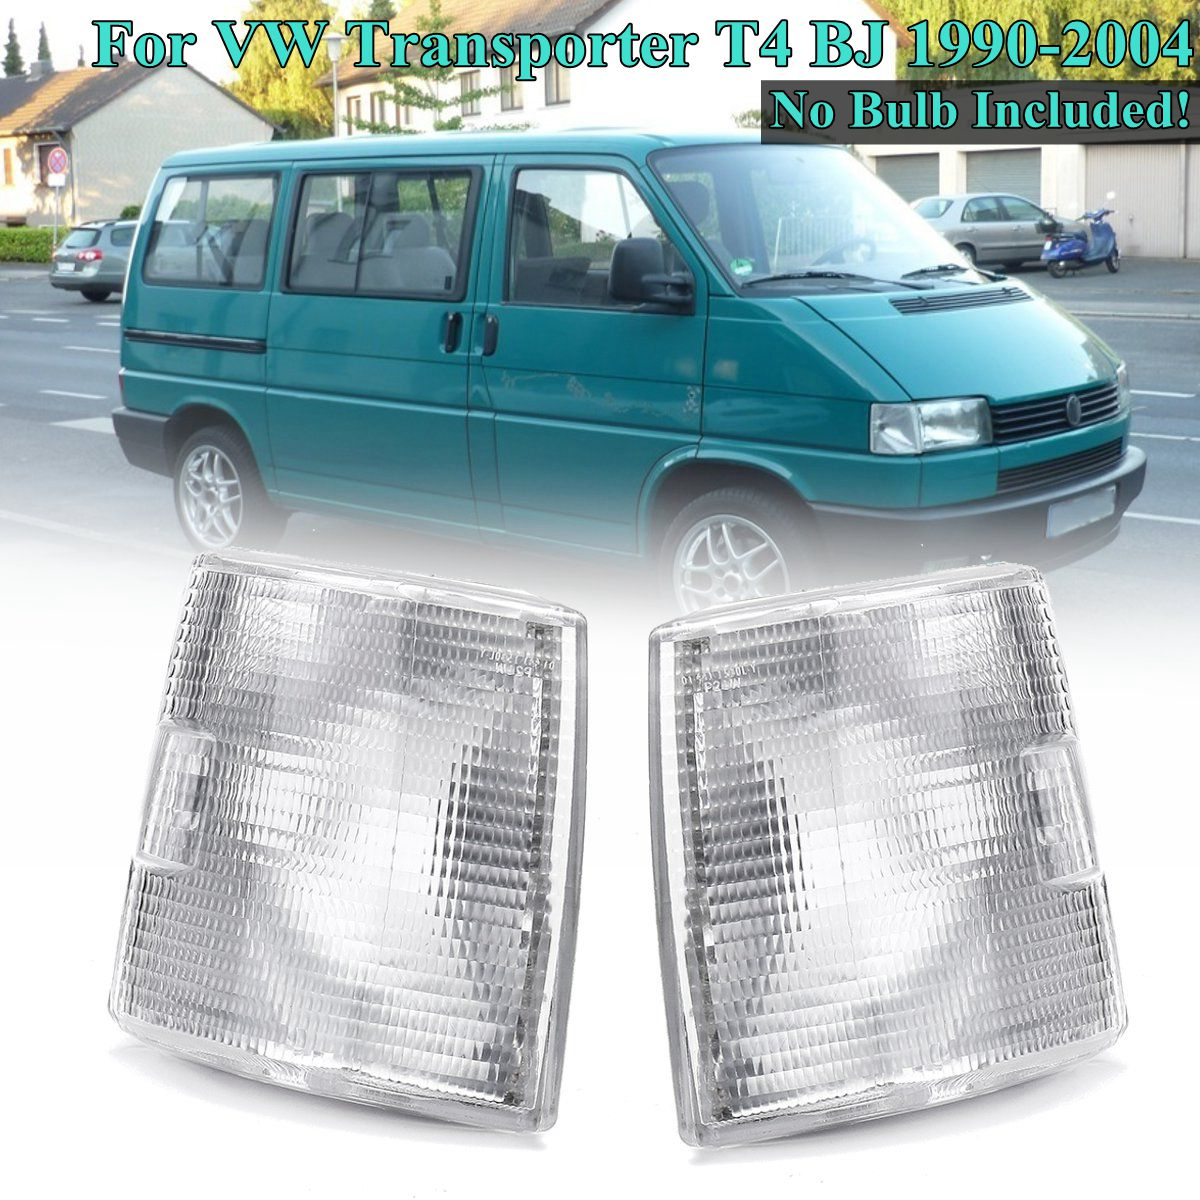 1 Pair Front Corner <font><b>Lights</b></font> Indicator Signal Lamps for <font><b>VW</b></font> Transporter <font><b>T4</b></font> 1990 1991 1992 1993 1994 1995 1996 1997 1998 1999~2004 image